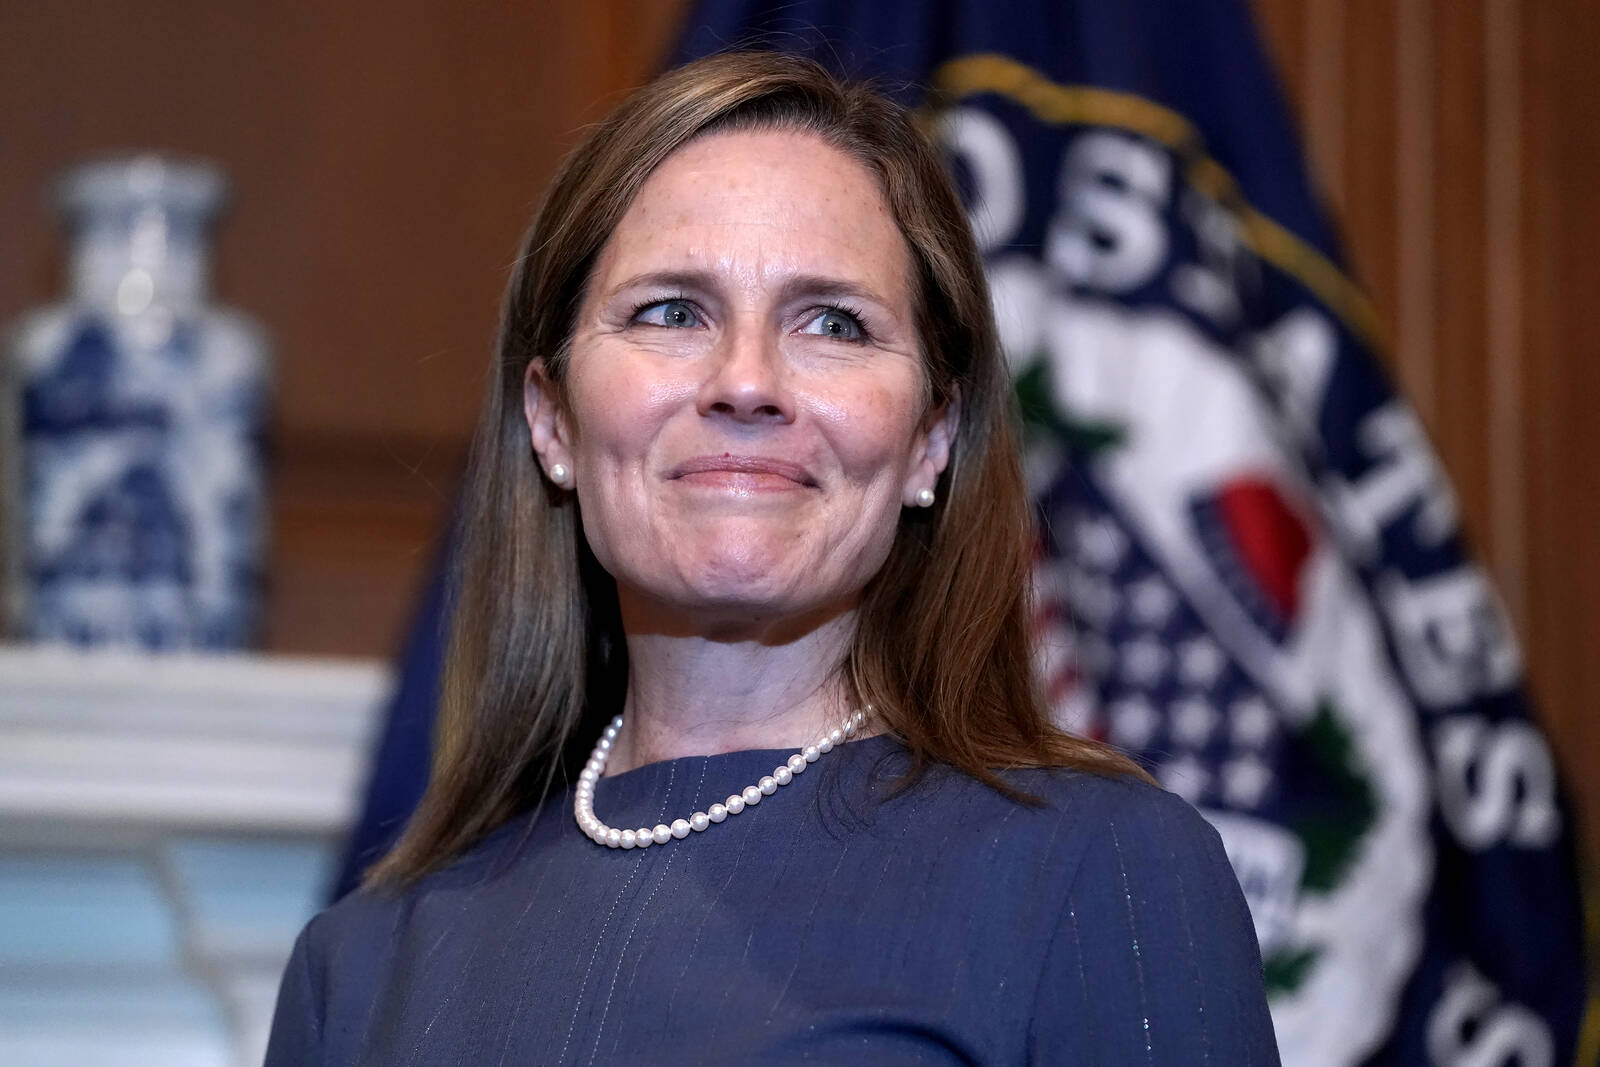 Seventh U.S. Circuit Court Judge Amy Coney Barrett, President Donald Trump's nominee for the U.S. Supreme Court, meets with Sen. John Thune (R-S.D.) as she begins a series of meetings to prepare for her confirmation hearing at the U.S. Capitol on Sept. 29